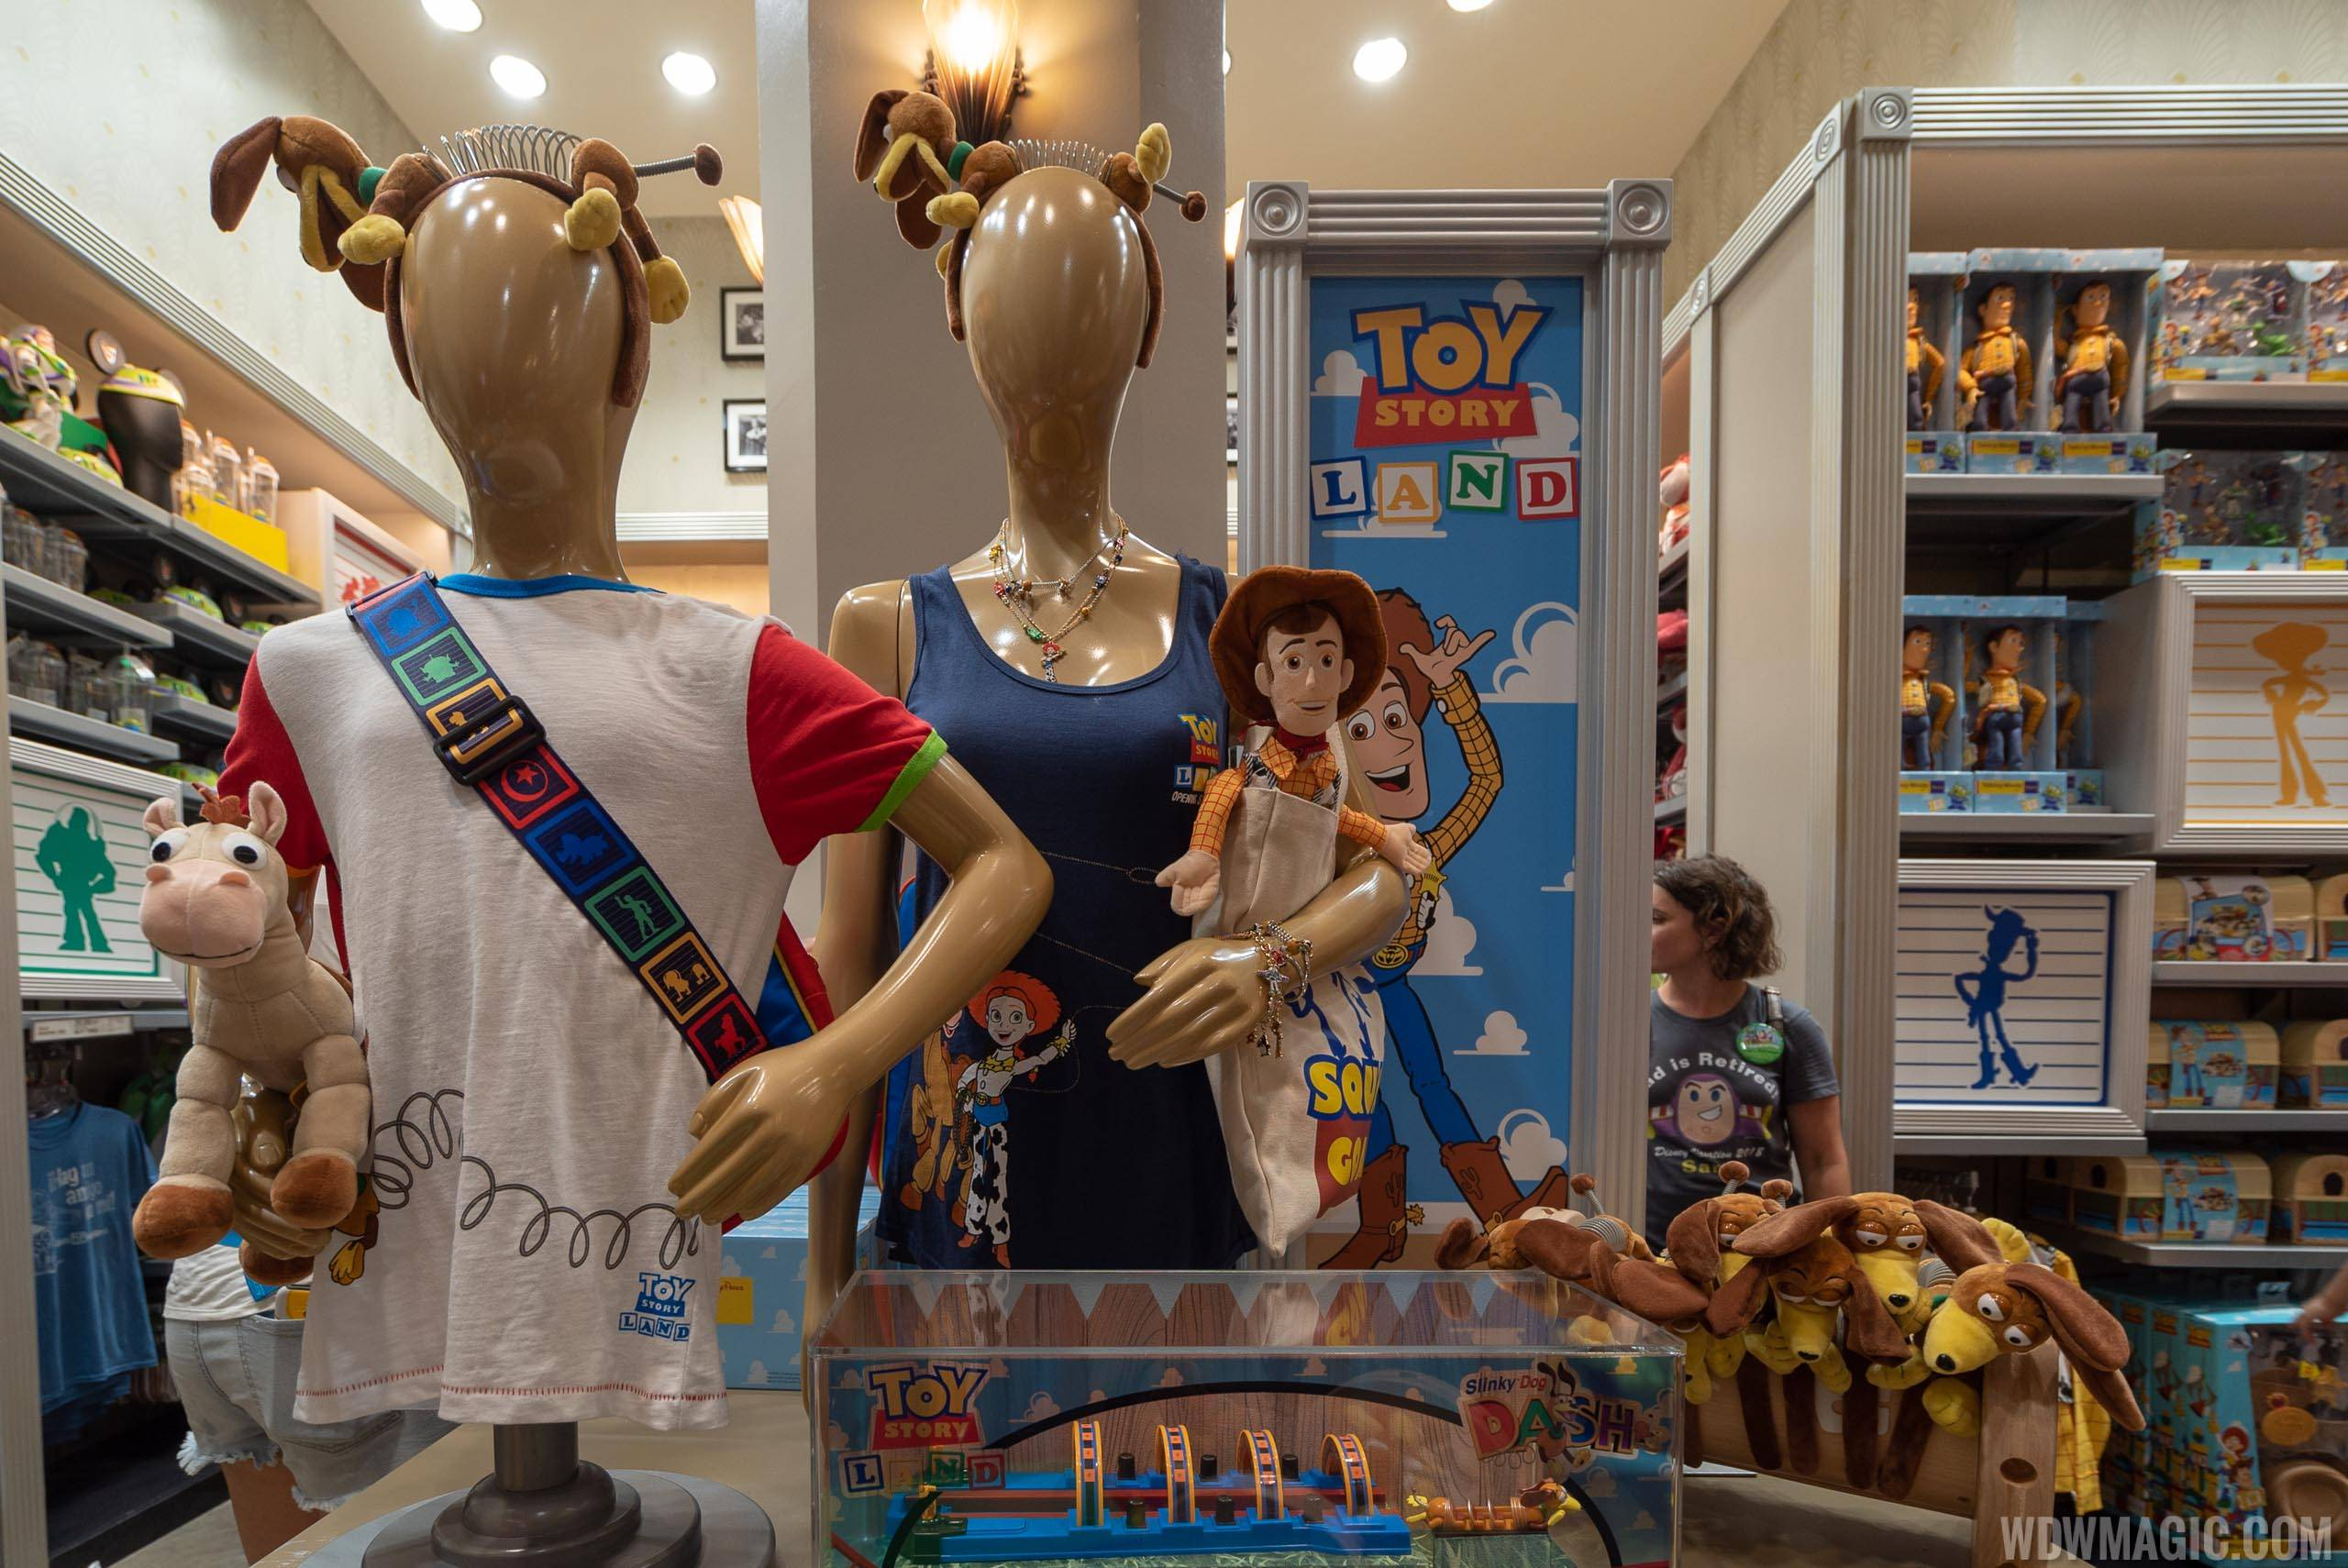 Beverly Sunset Toy Story store